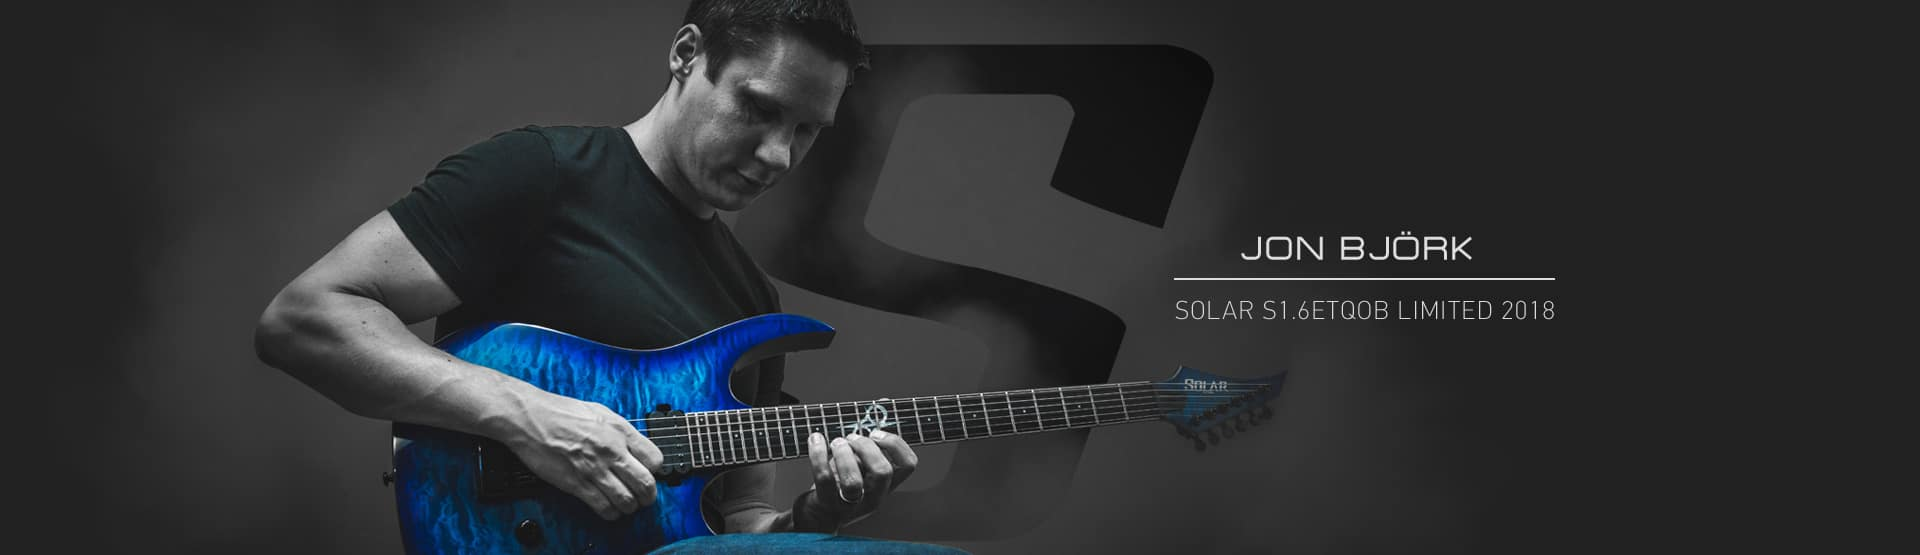 Welcome To The SOLAR GUITARS Website